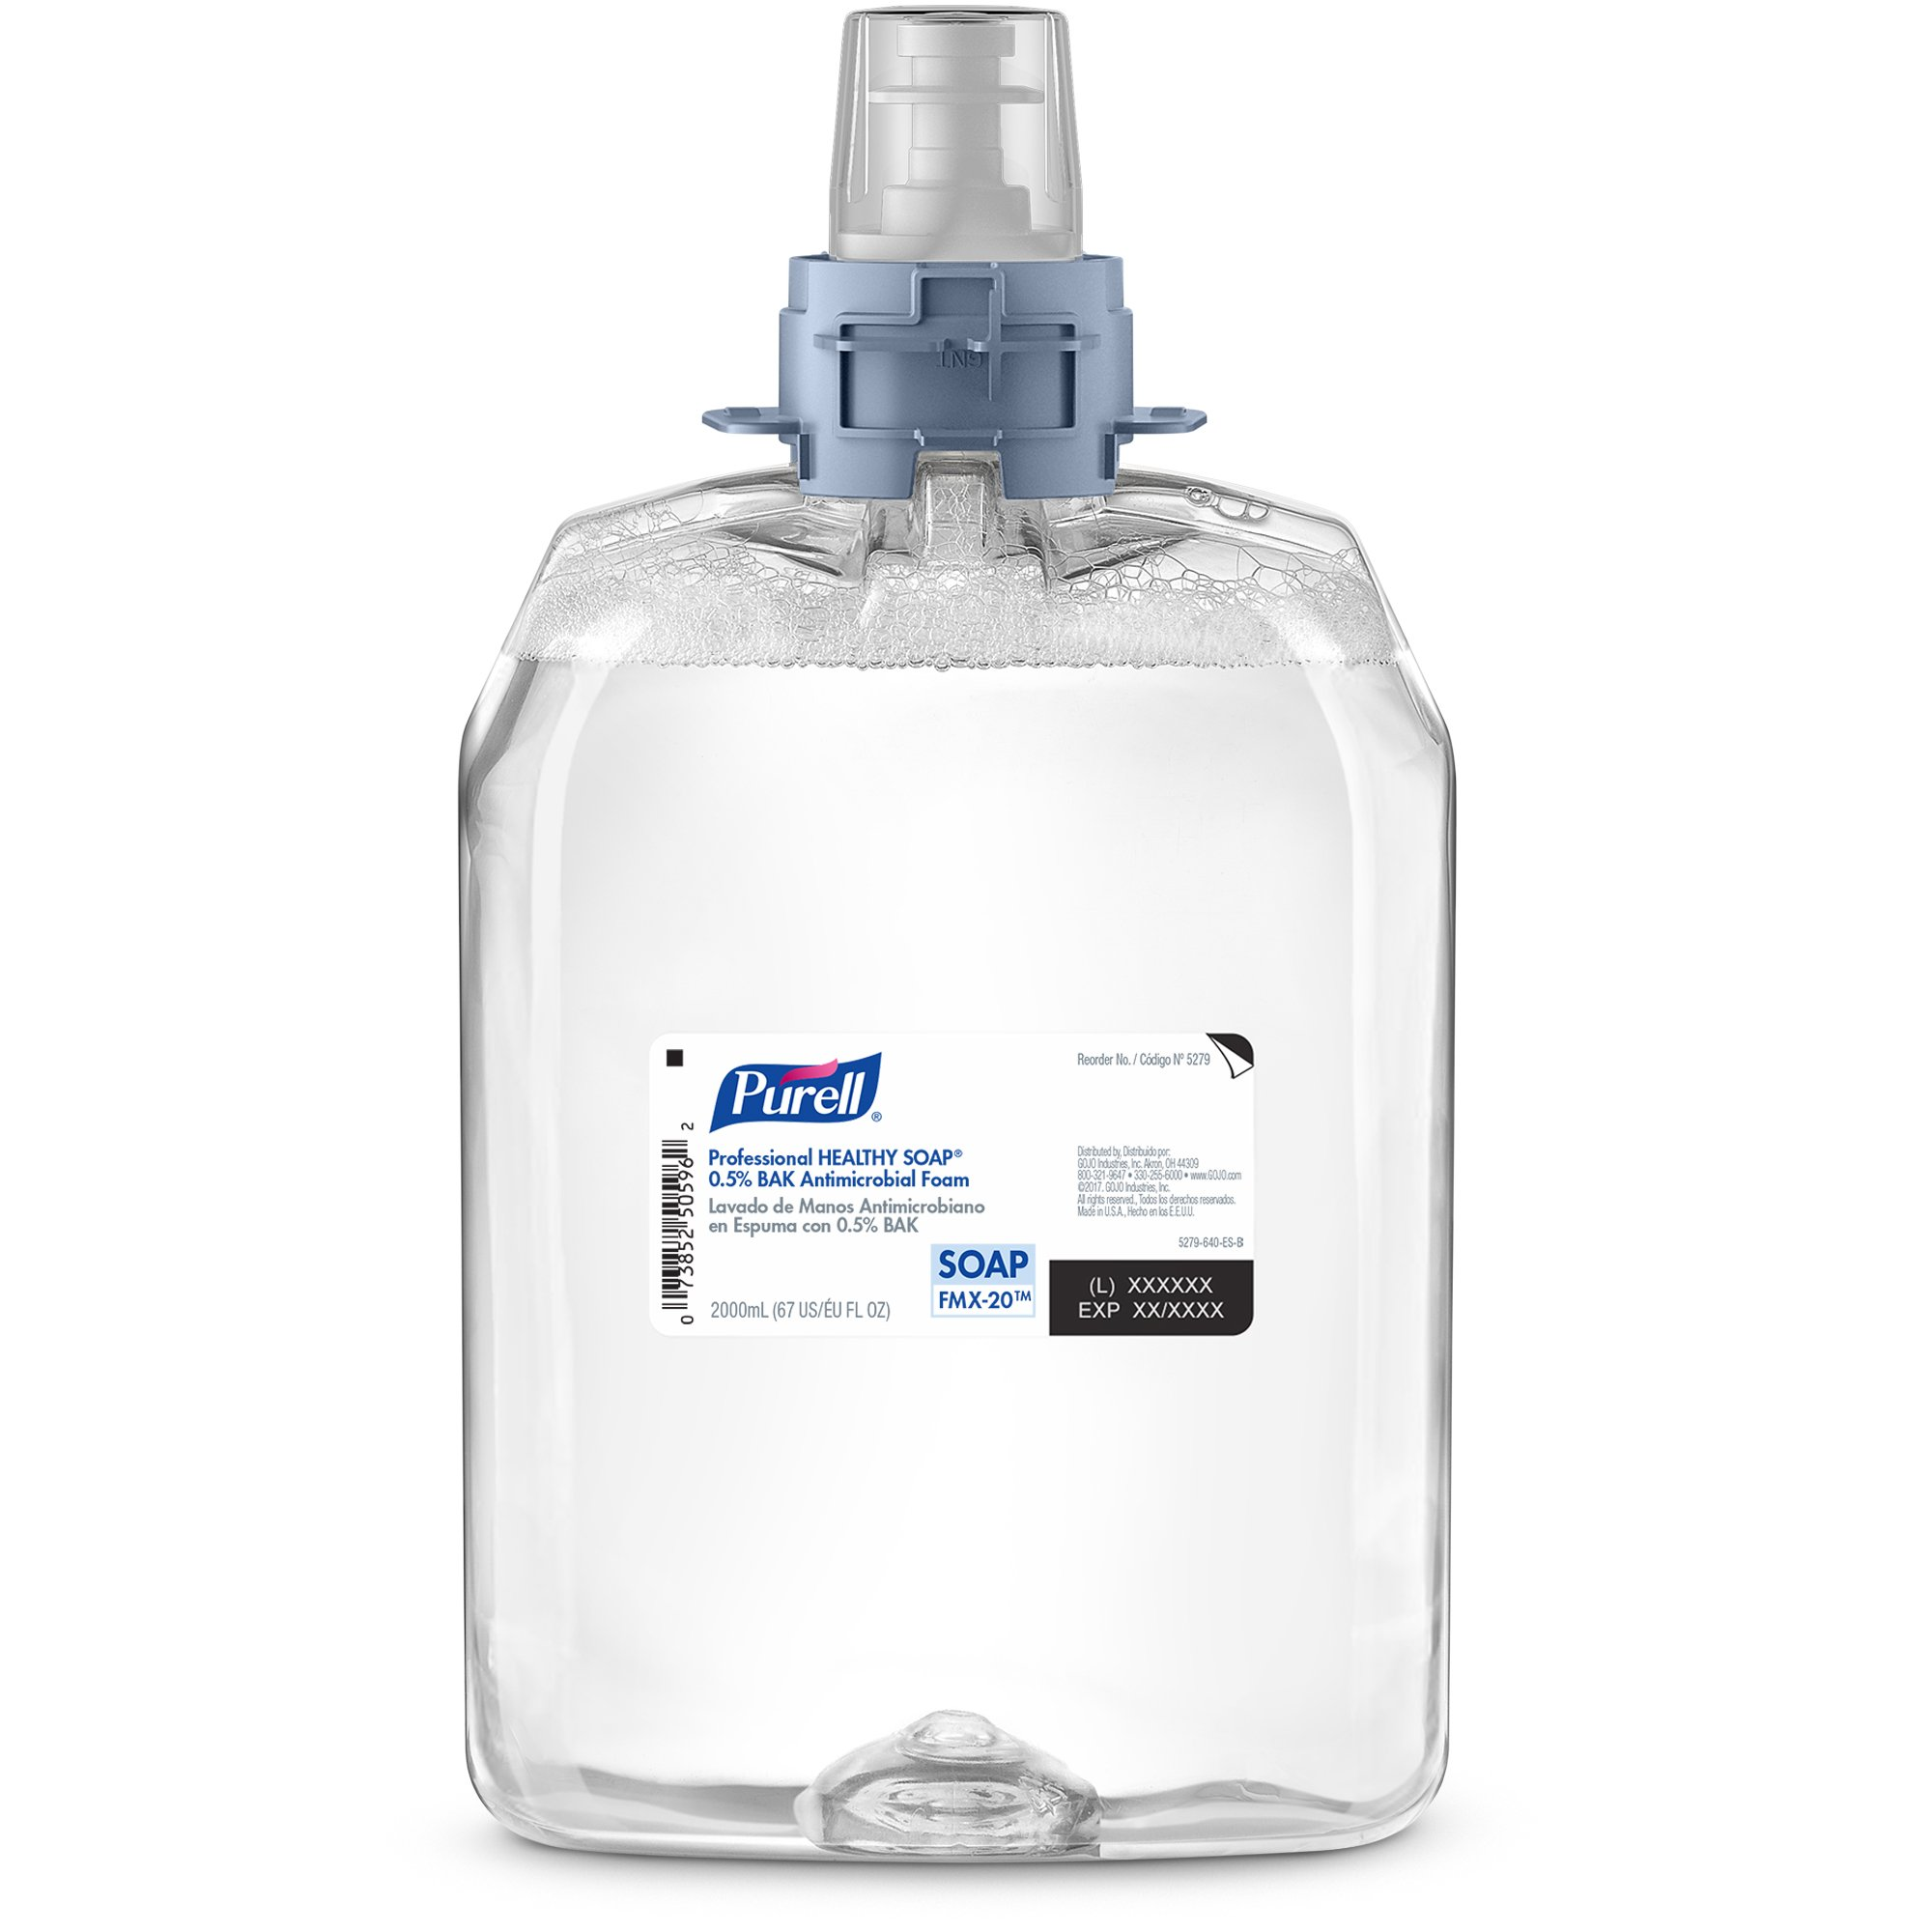 PURELL FMX-20 Professional HEALTHY SOAP 0.5% Bak Antimicrobial Foam, 2000 mL Soap Refill for PURELL FMX-20 Push-Style Dispenser (Pack of 2) - 5279-02